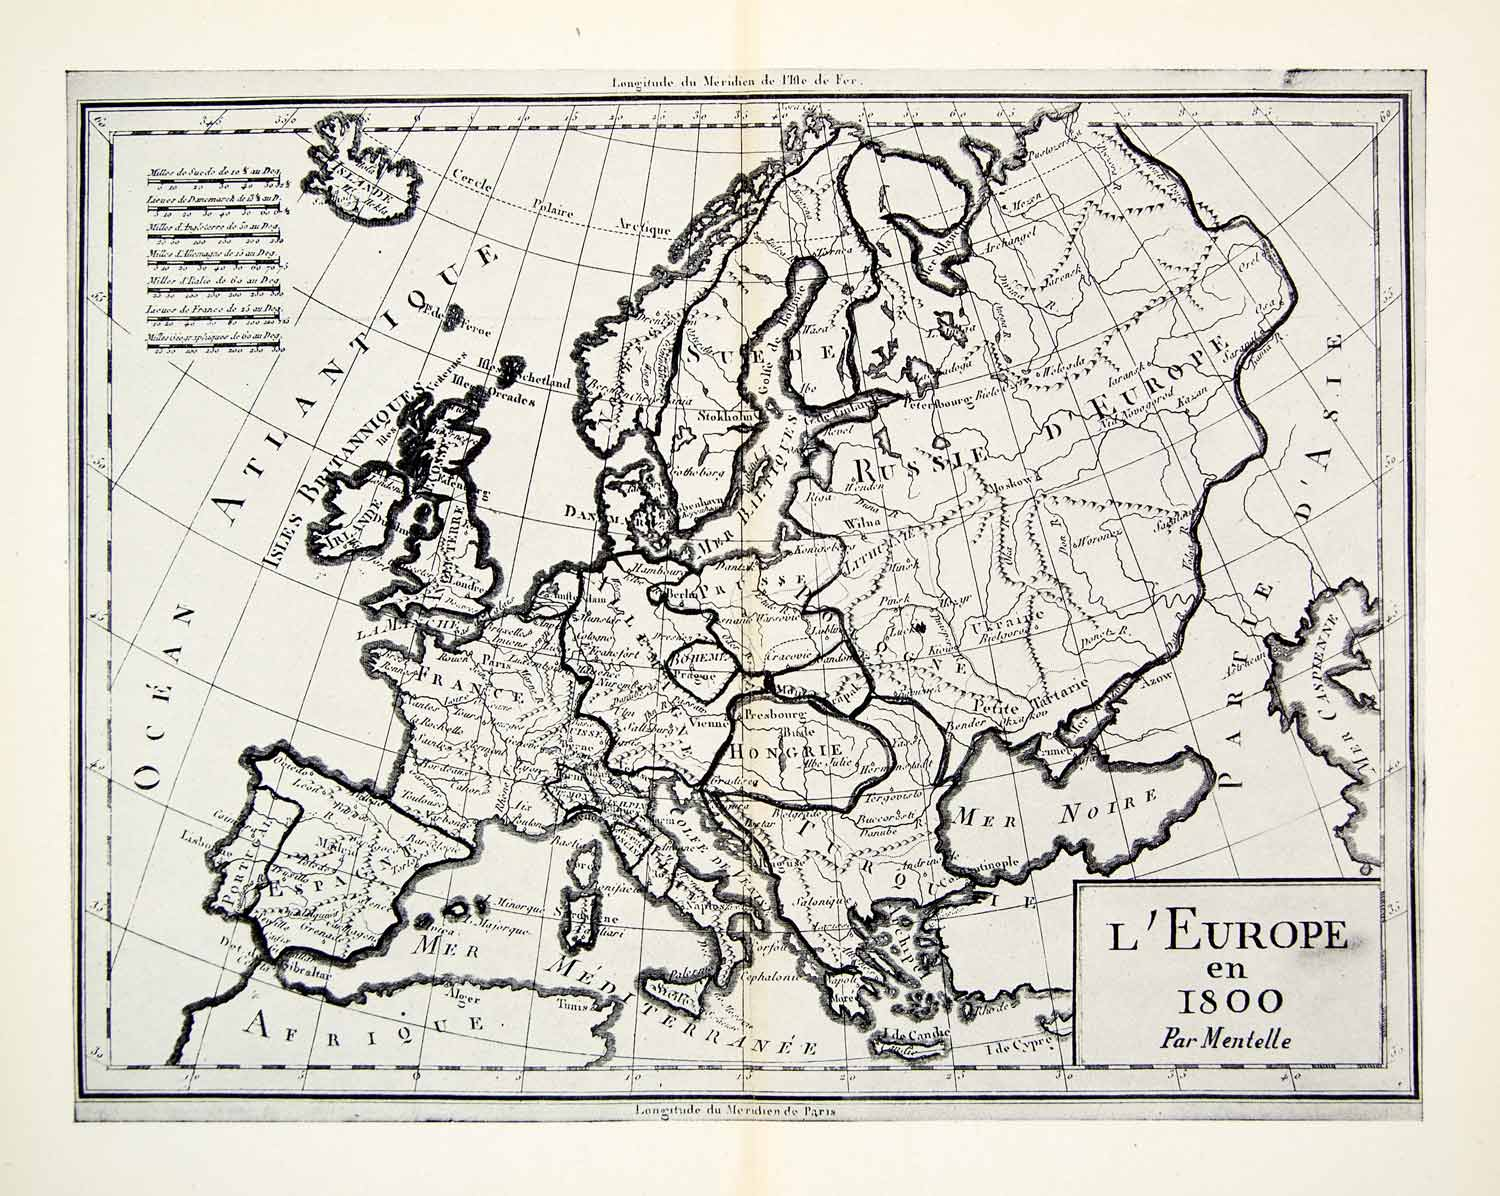 1944 Map L'Europe 1800 Ocean Atlantique Danmark Irlande France Paris Images Of Map Europe on map of asia 1900, blank map europe 1800, map of spain, map of austria-hungary during ww1, map 10000 years in the future, map south america 1800, map with 7 emirates uae, map of absolute monarchs, map russia 1800, map in europe, map west indies 1800,